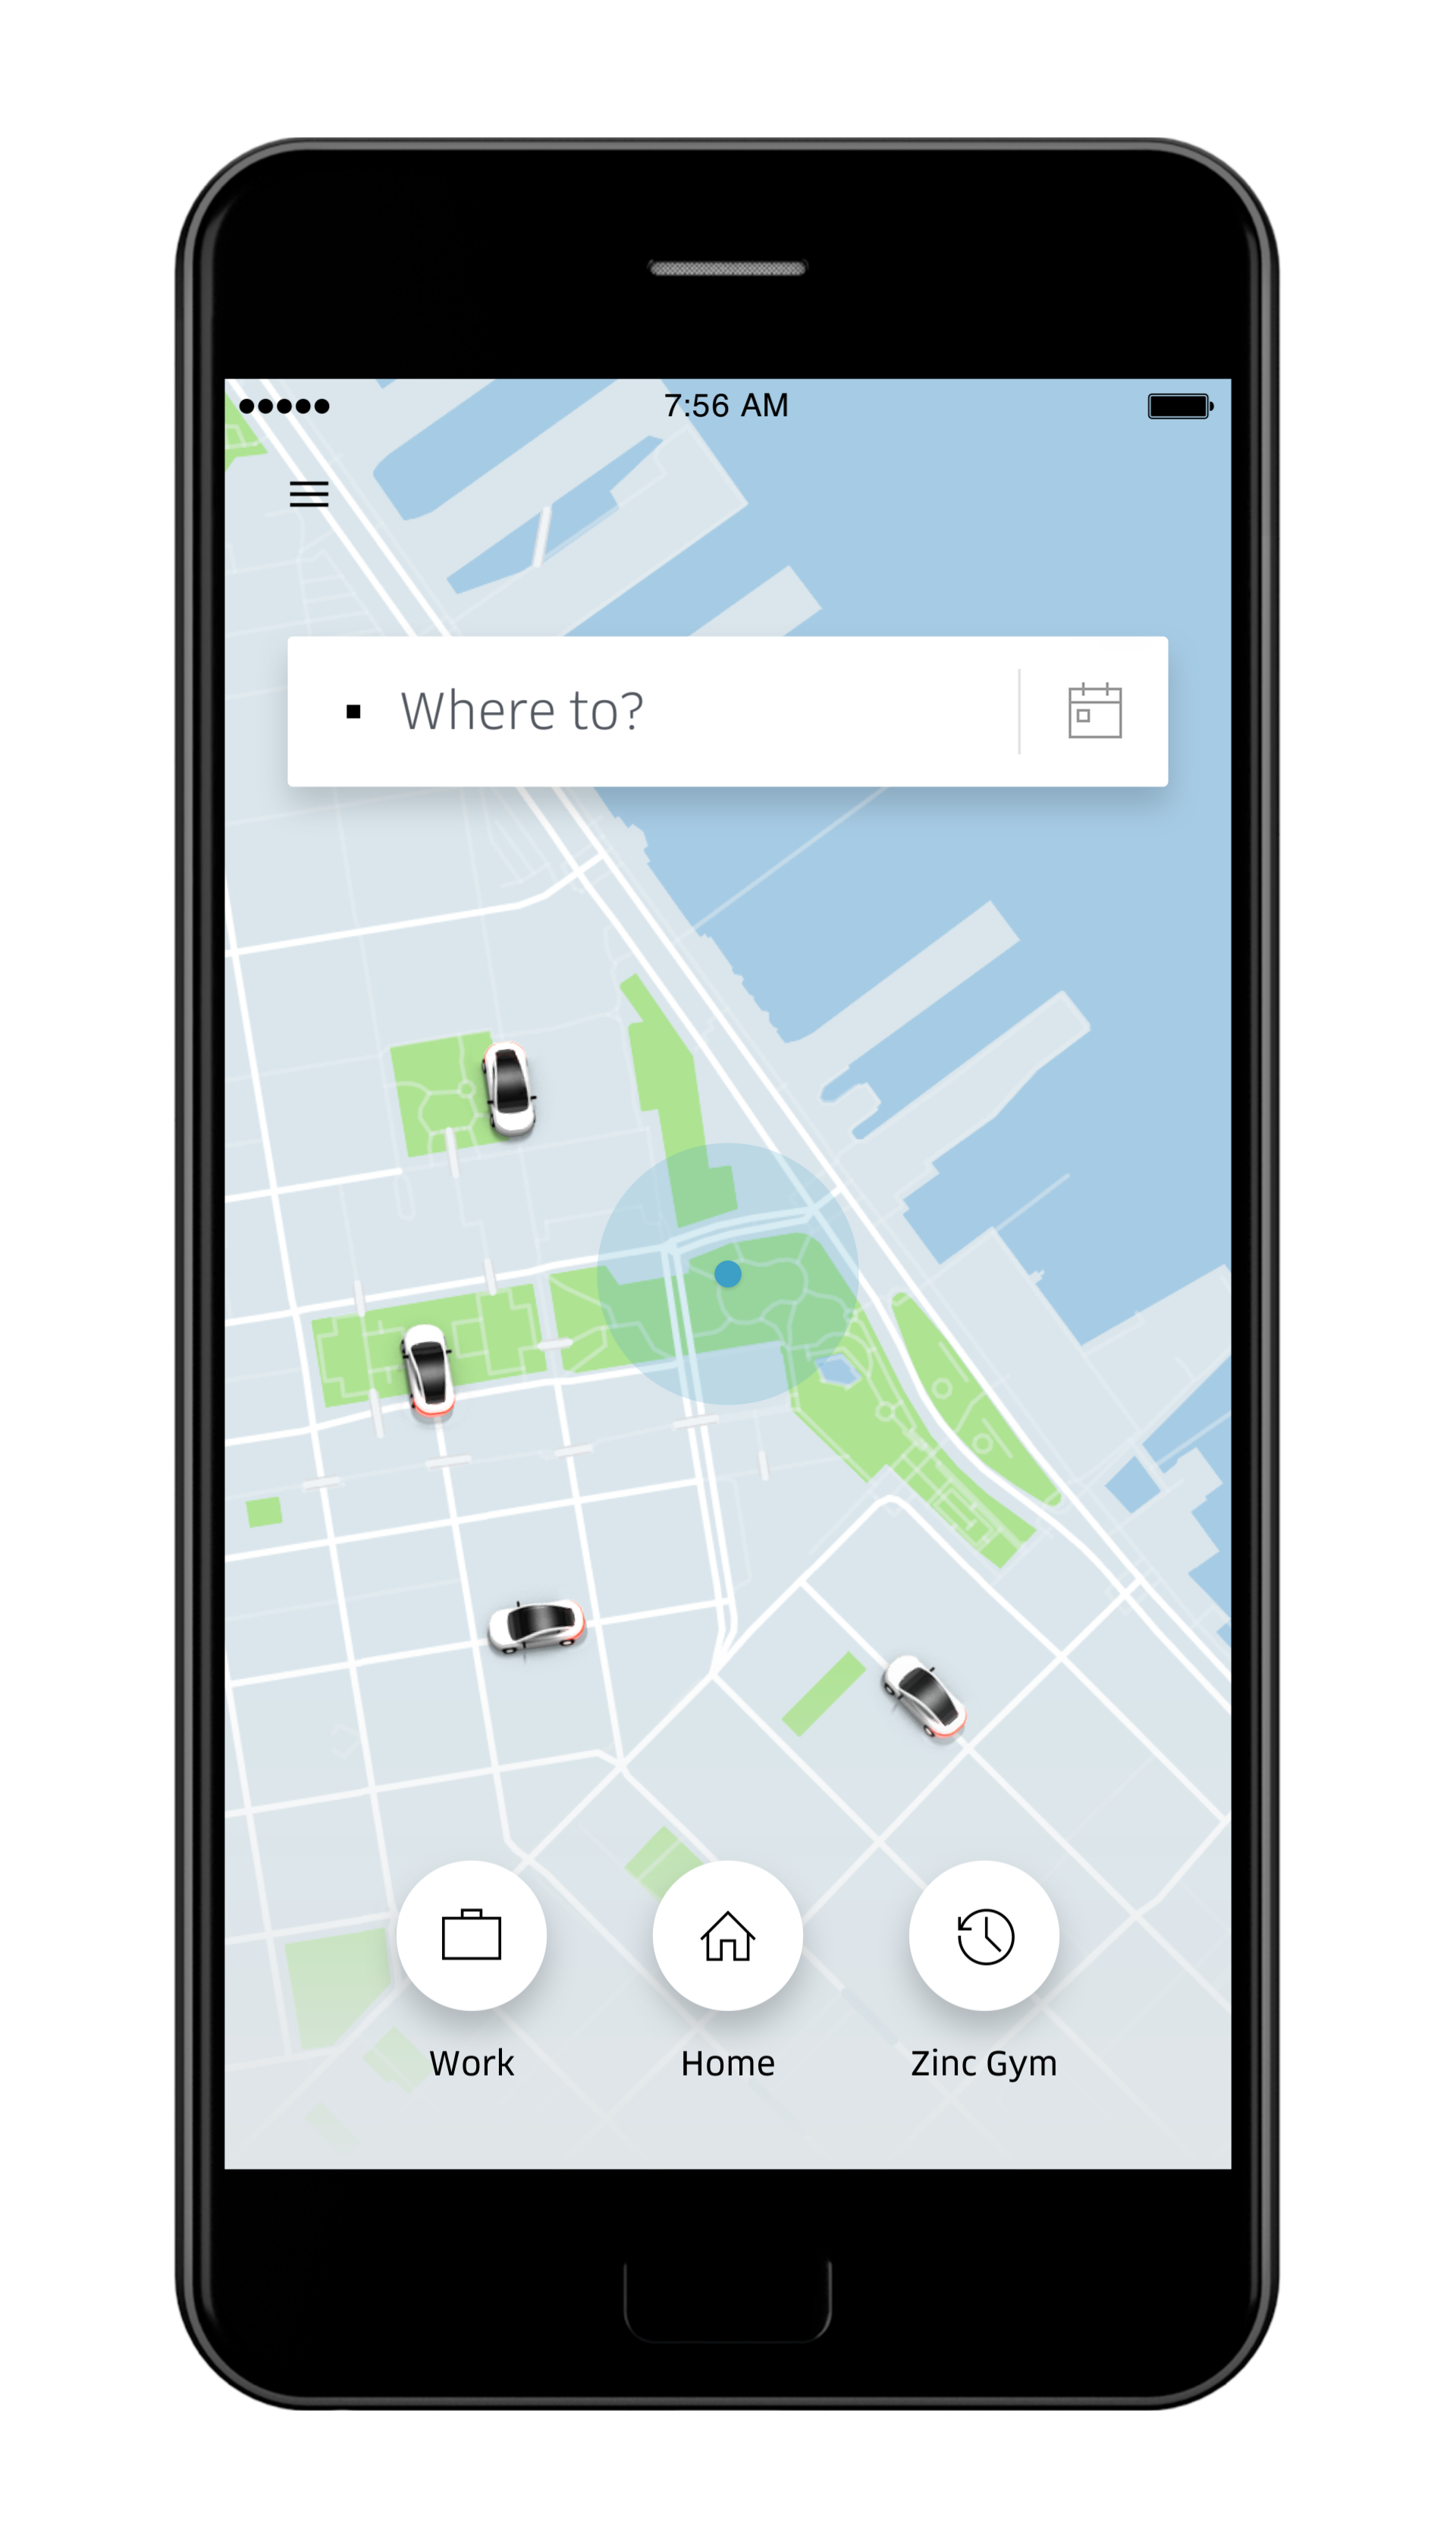 A look at Uber's App - Photo Compliments Uber Canada